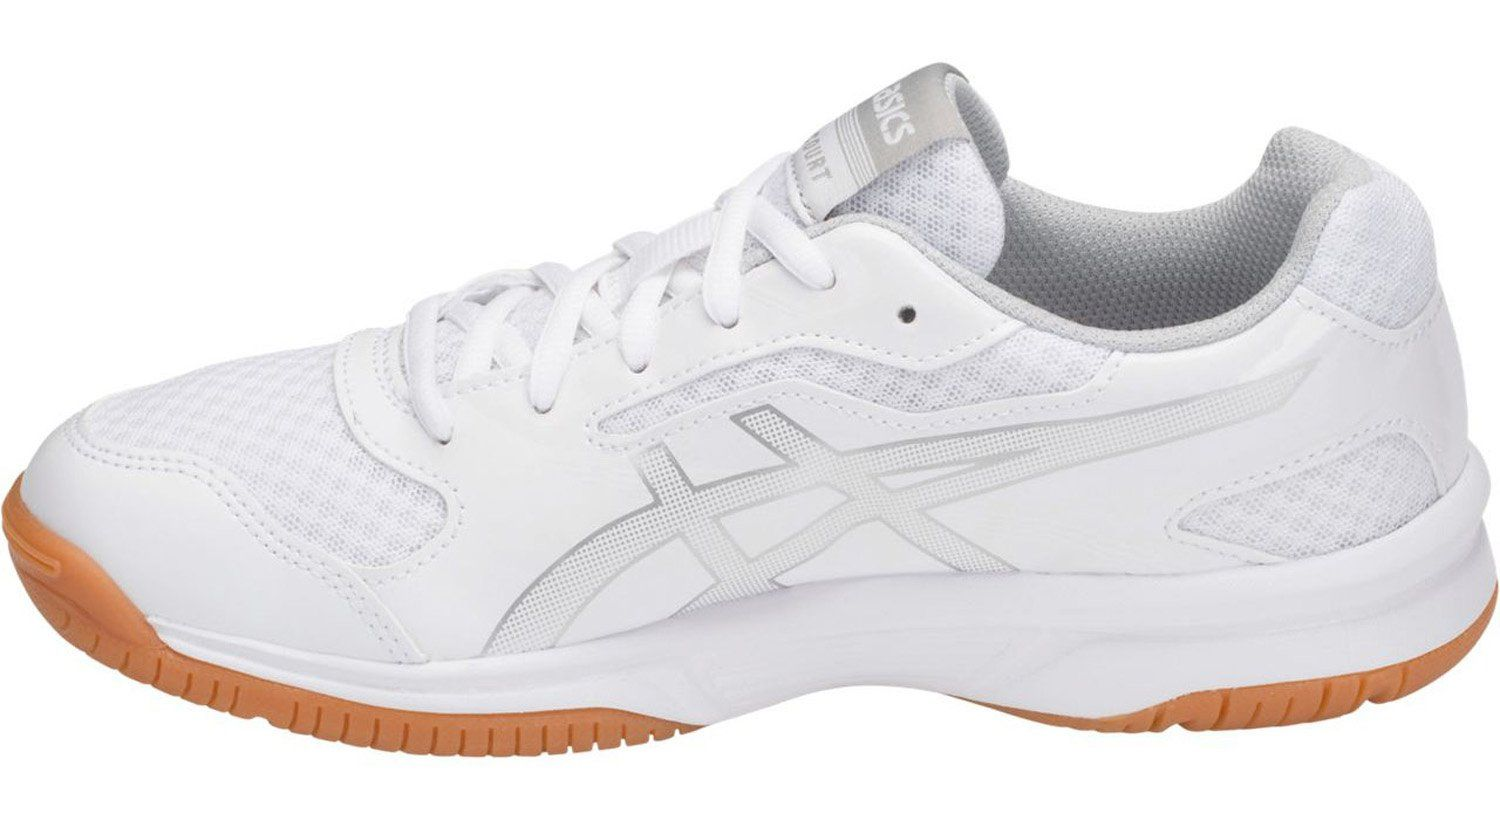 Asics B755y Womens Upcourt 2 Running Shoe White Silver 8 5 B M Us You Can Find Out More Details At The Link Of The Image Volleyball Shoes Asics Asics Women